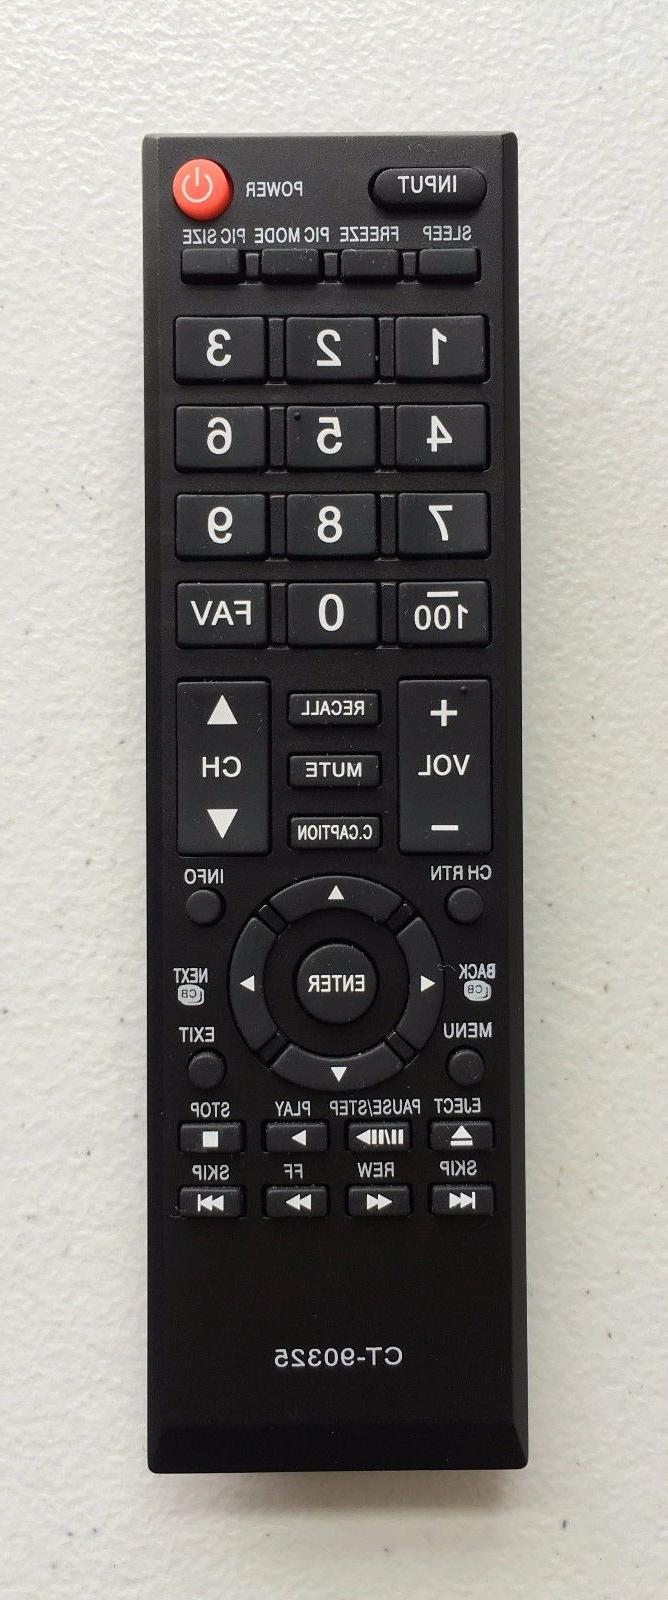 new remote ct 90325 for toshiba 19